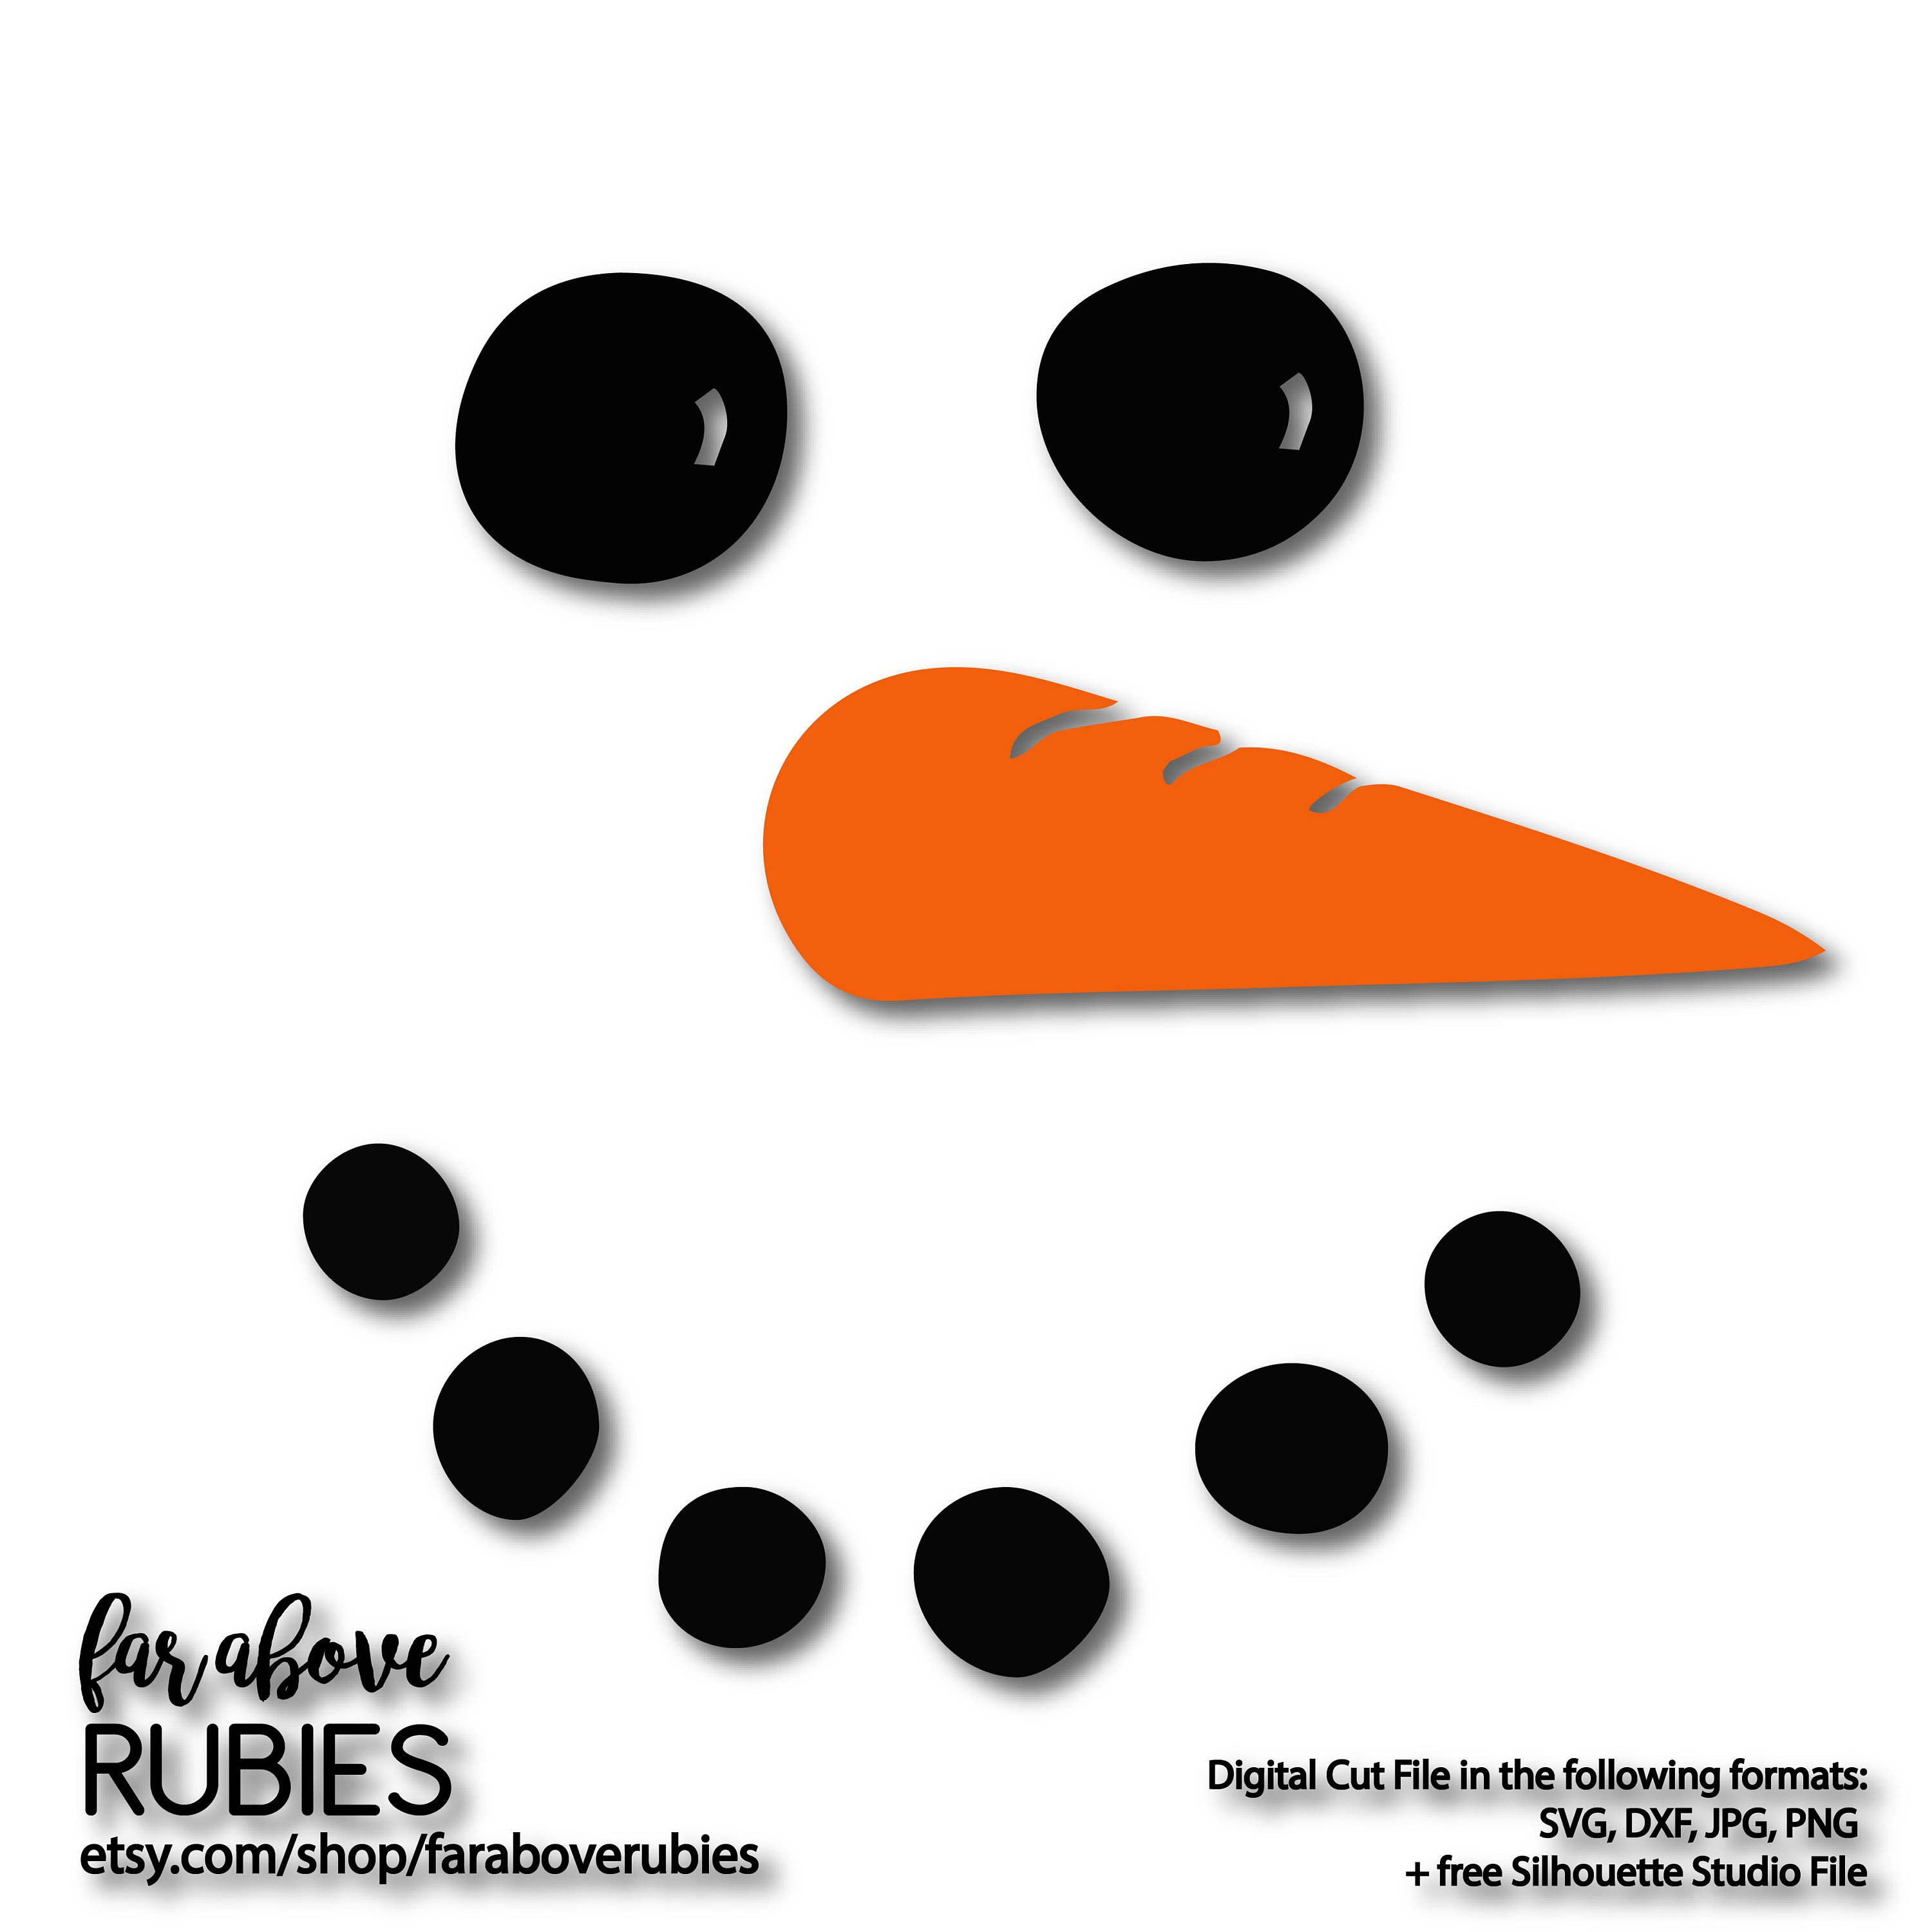 Carrot Nose Printable Snowman Face with Carrot Nose Svg Eps Dxf Png Digital